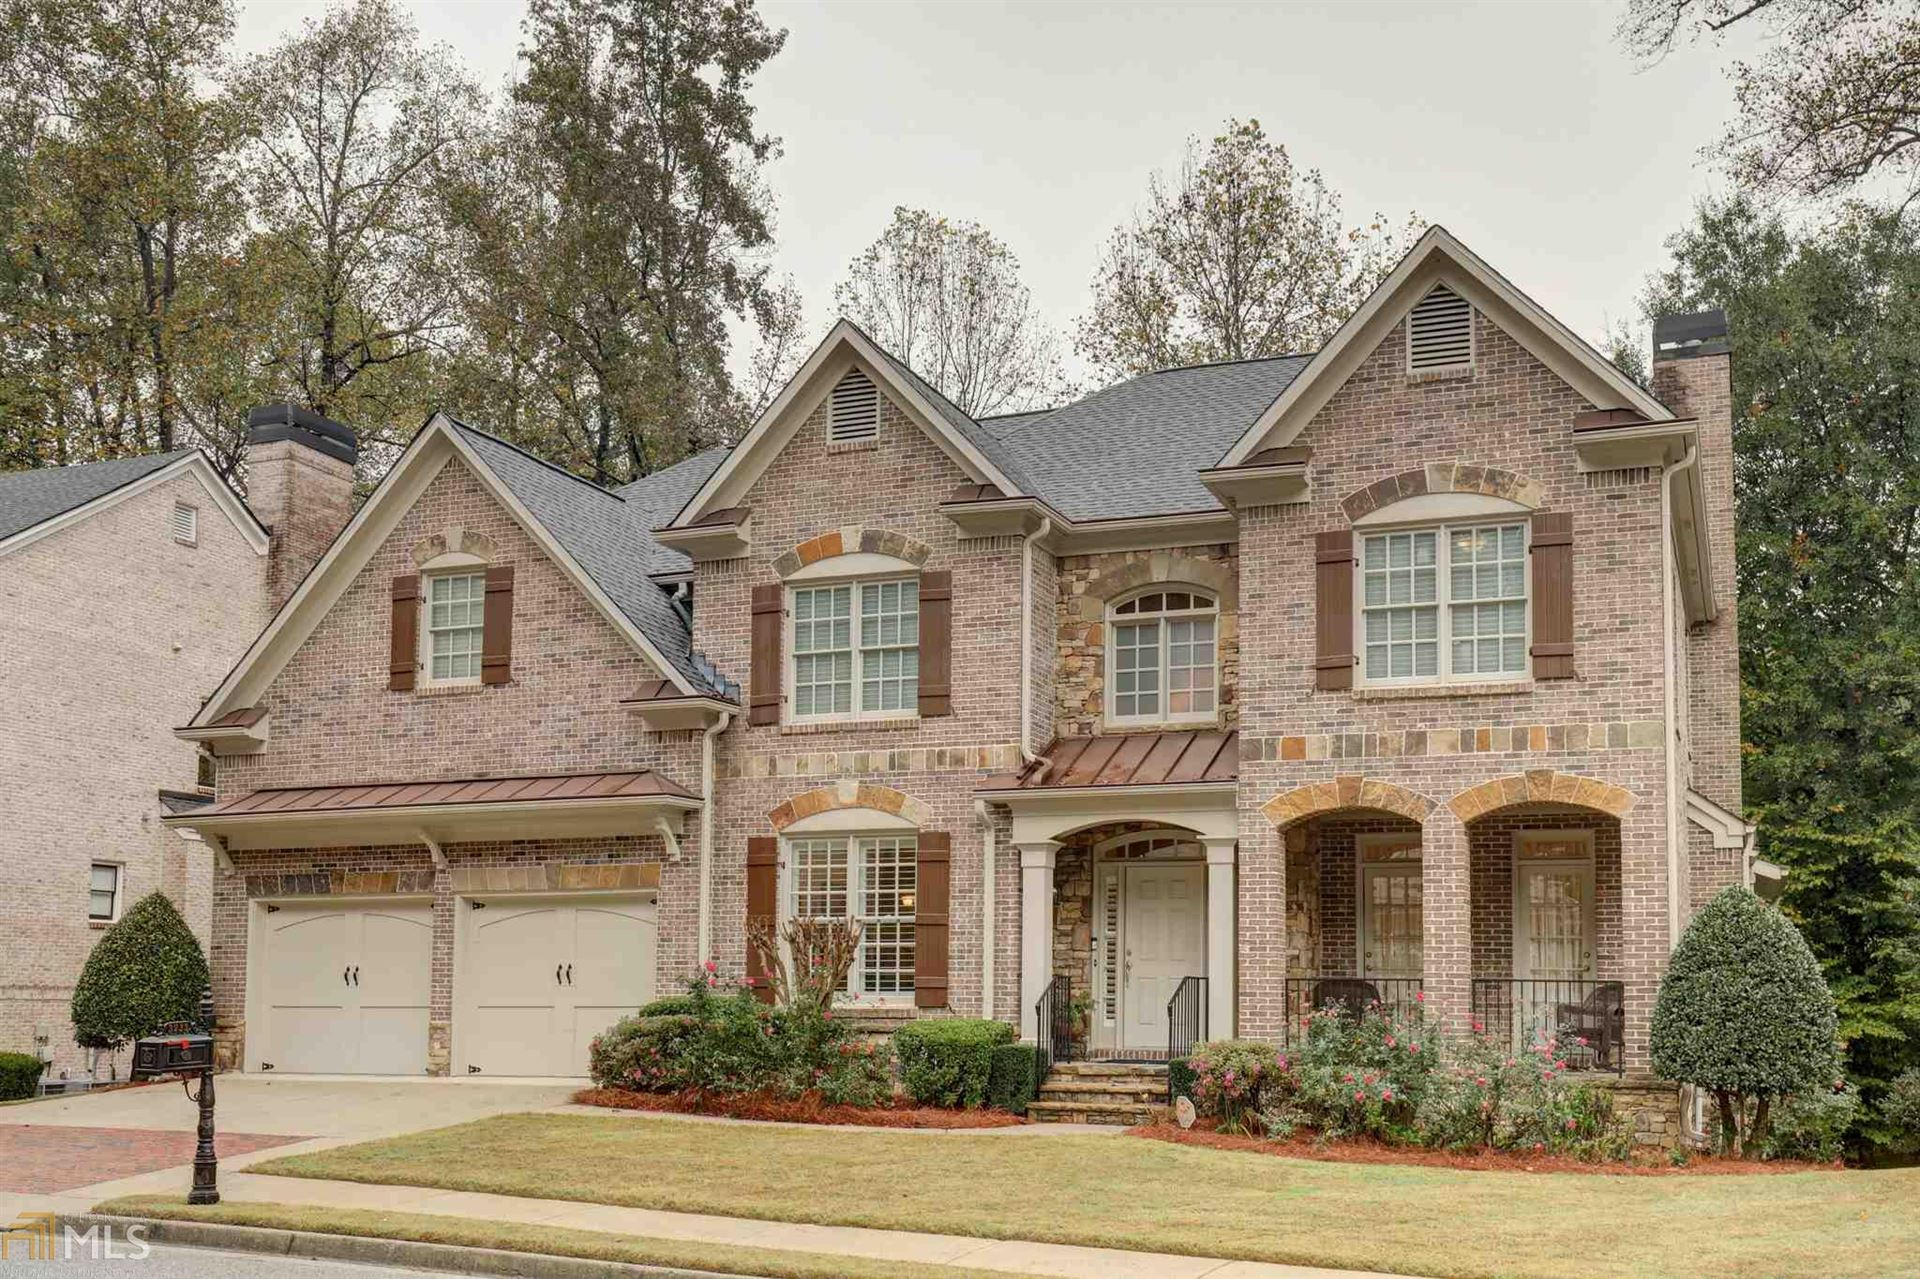 3233 Collier Gate Ct, Smyrna, GA 30080 - #: 8881632